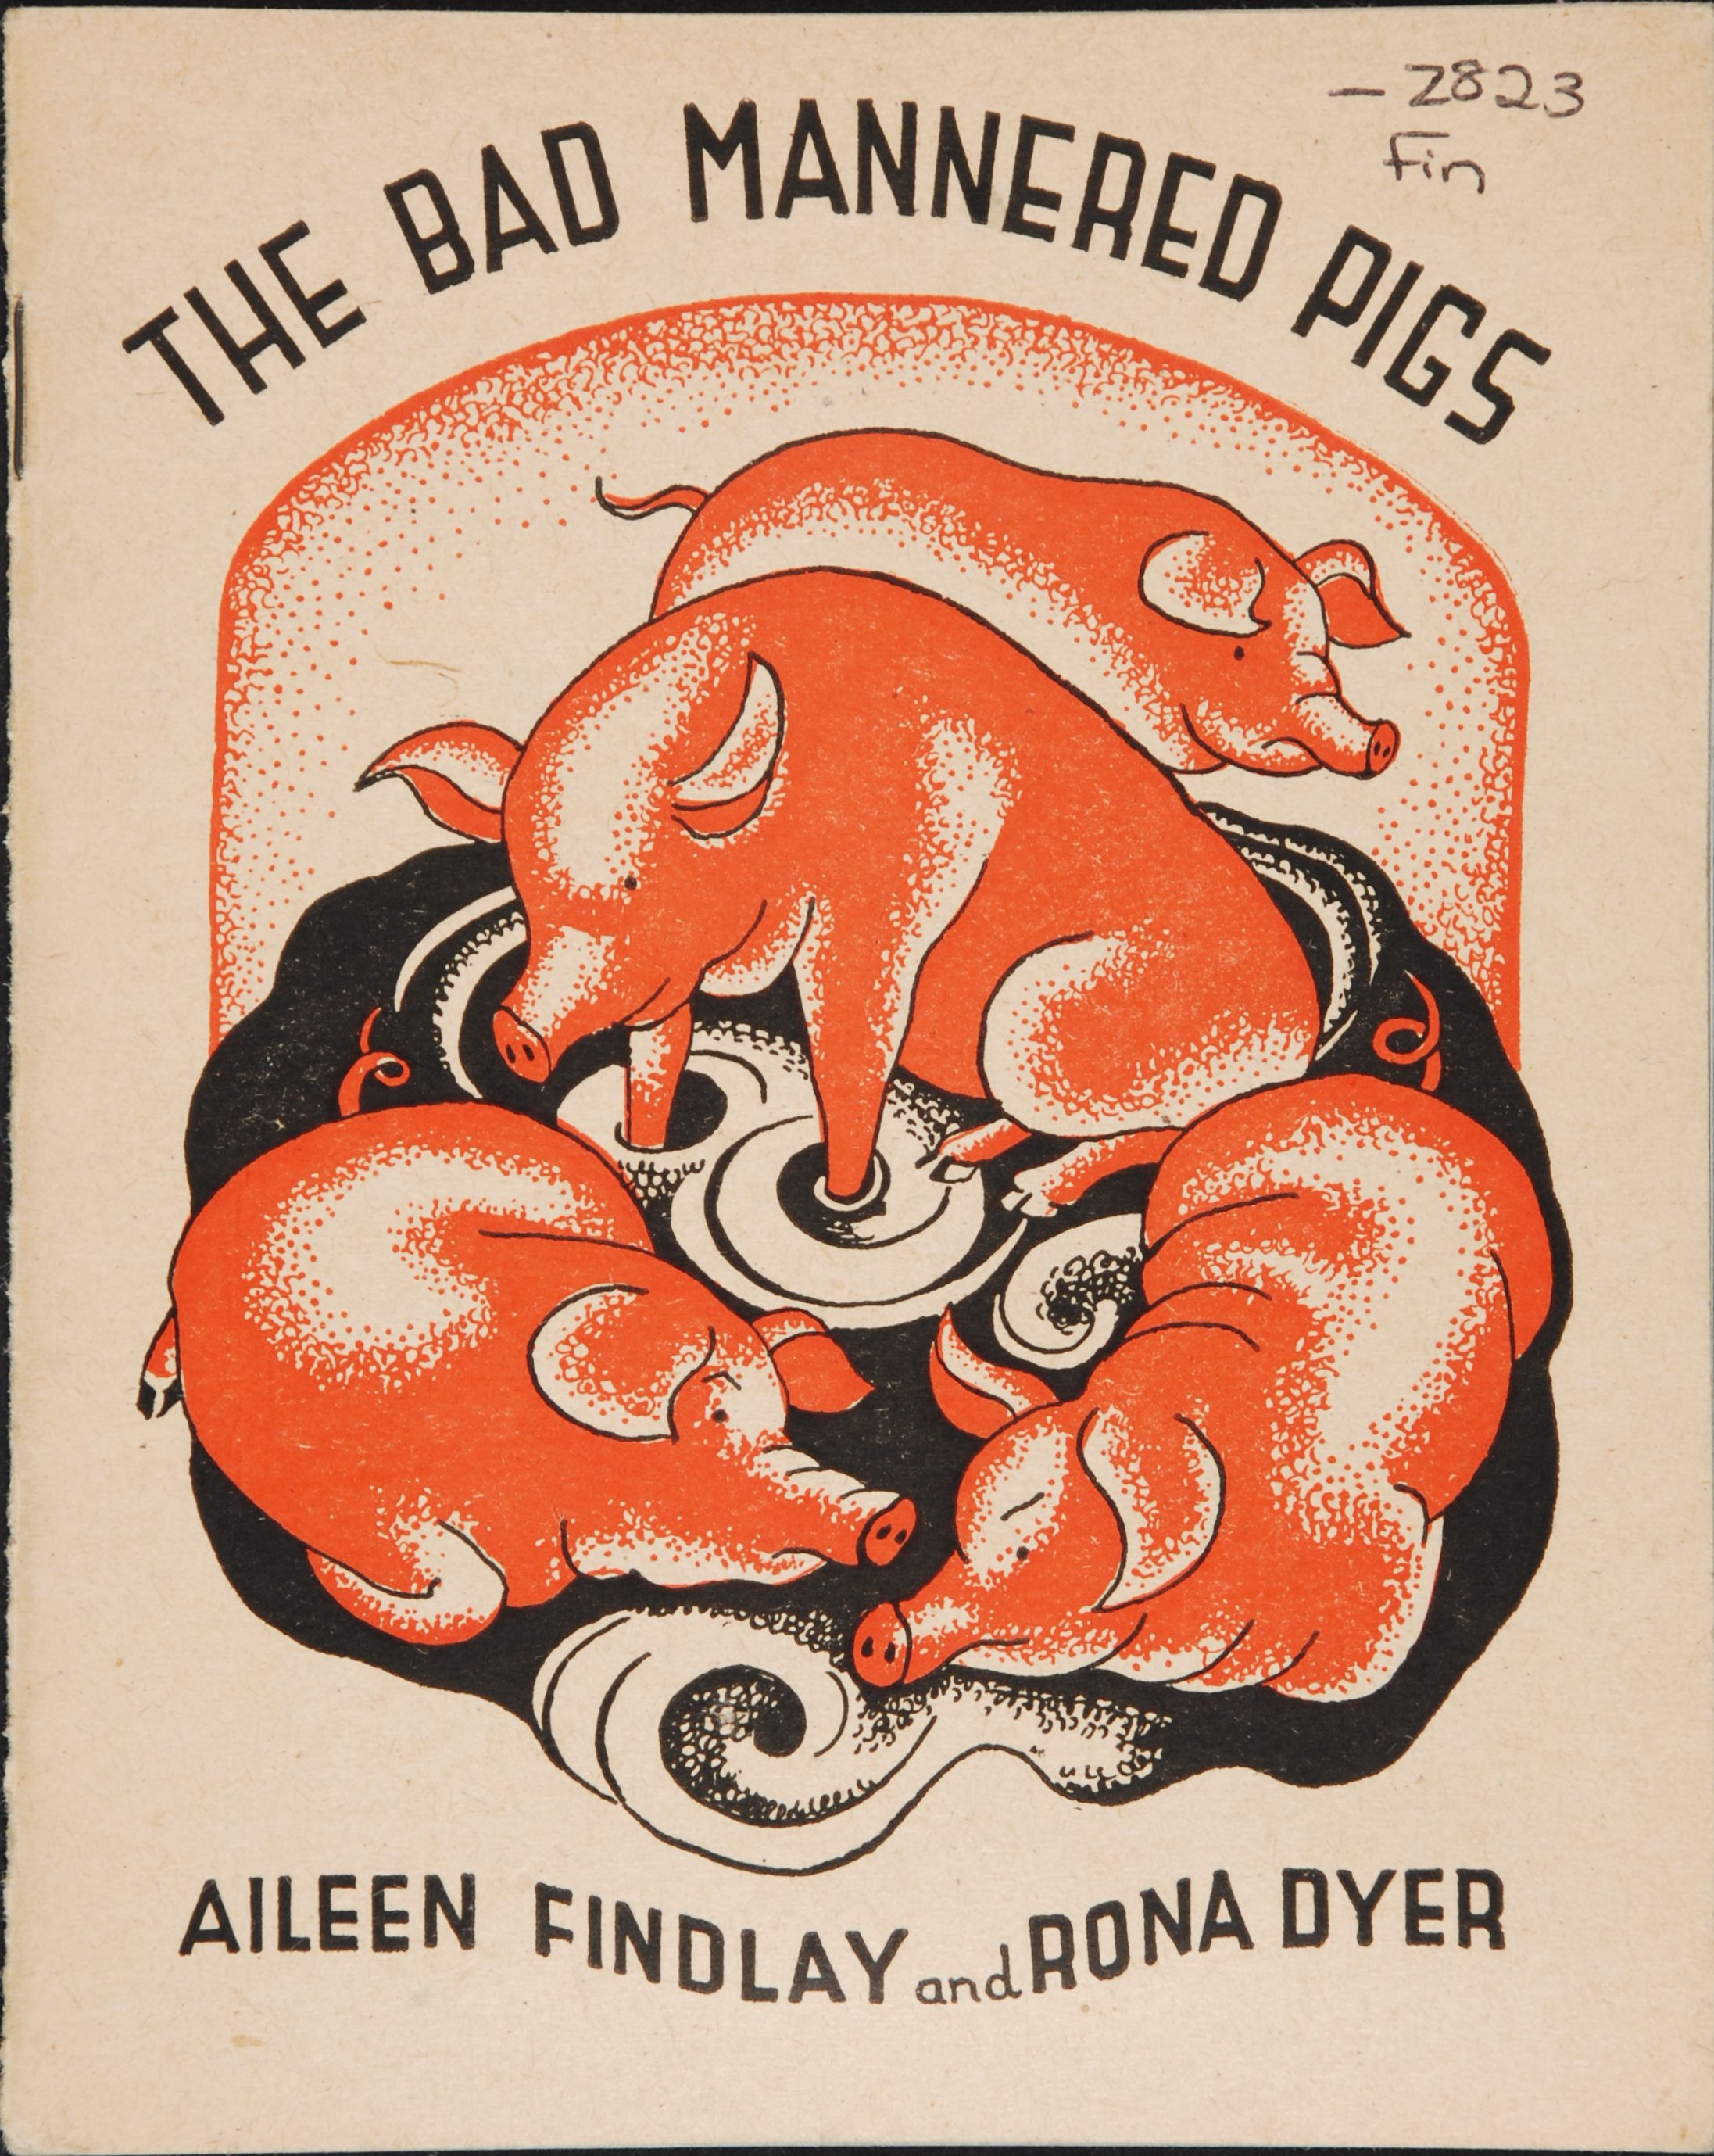 Aileen Findlay. The bad mannered pigs: a read it your-self book. [Wellington, N.Z.: Progressive Publishing Society], 1944.